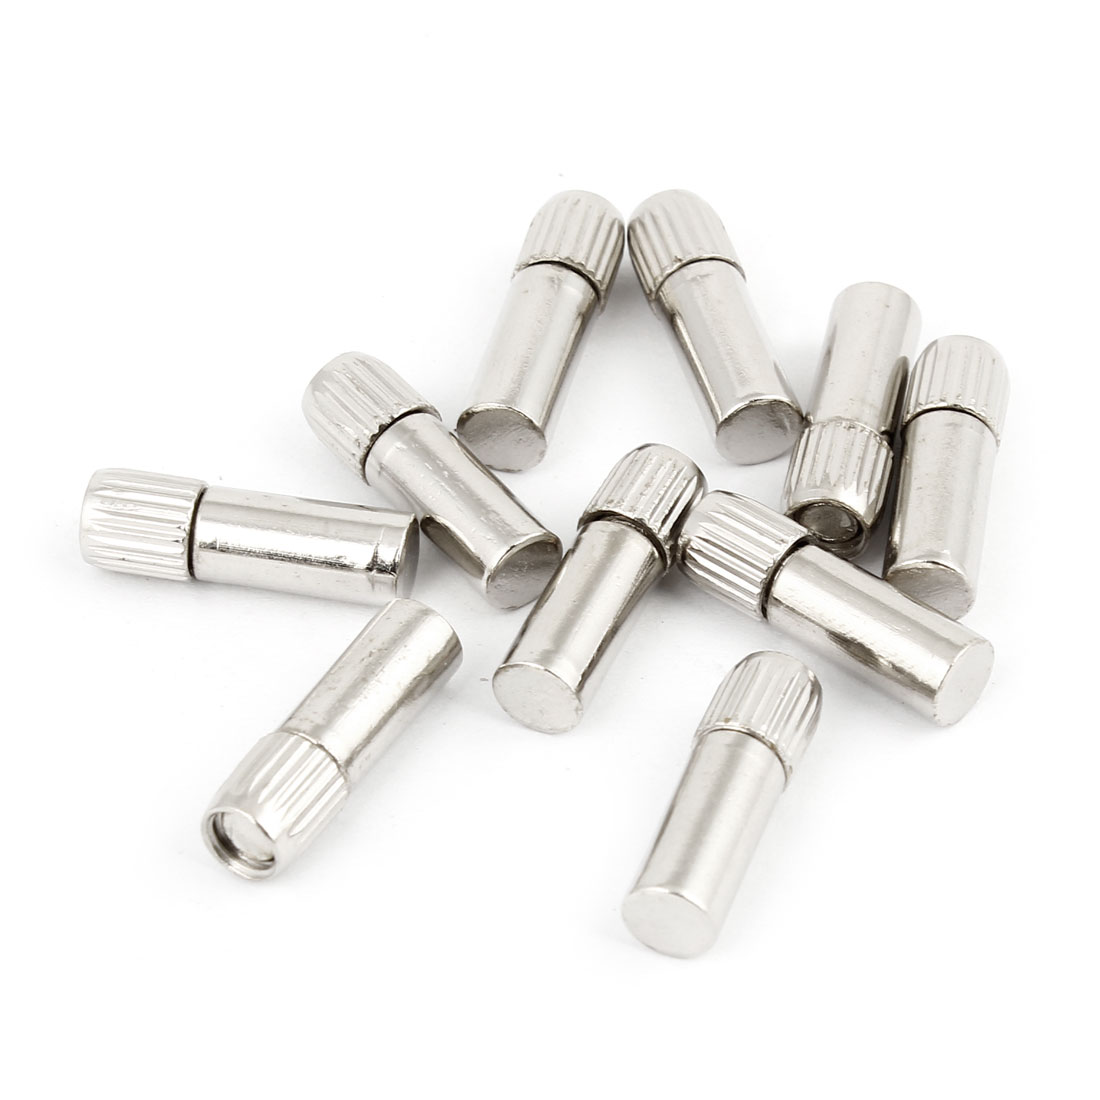 Glass Shelf Studs Pegs Holder Threaded 20mm Length 10 Pcs